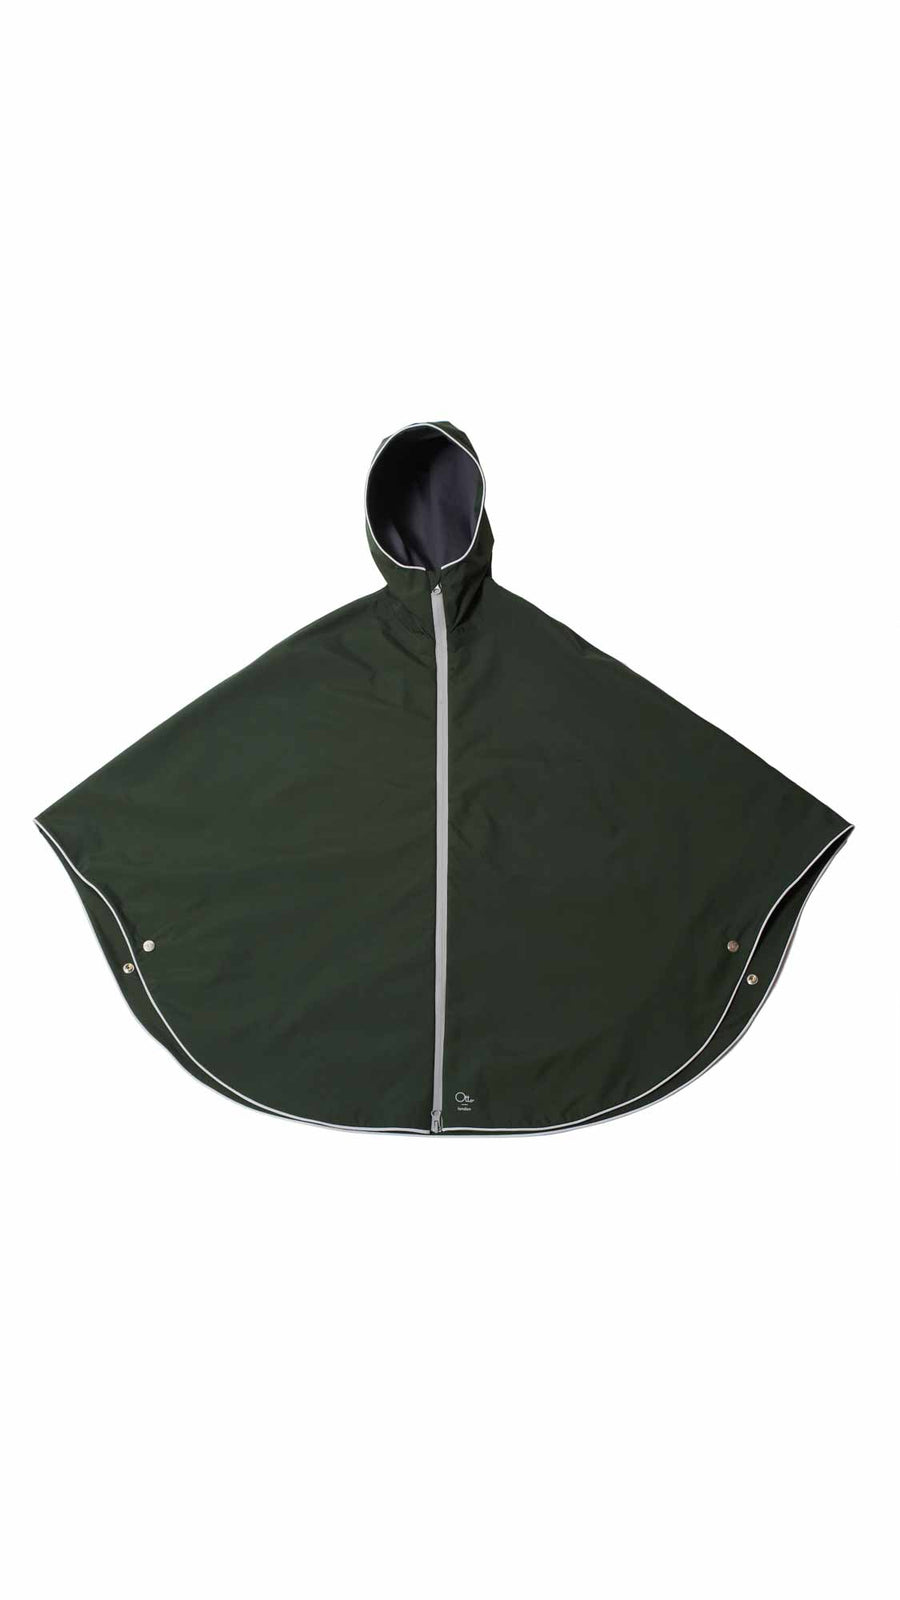 Cycling rain cape - Kombu Green Poncho